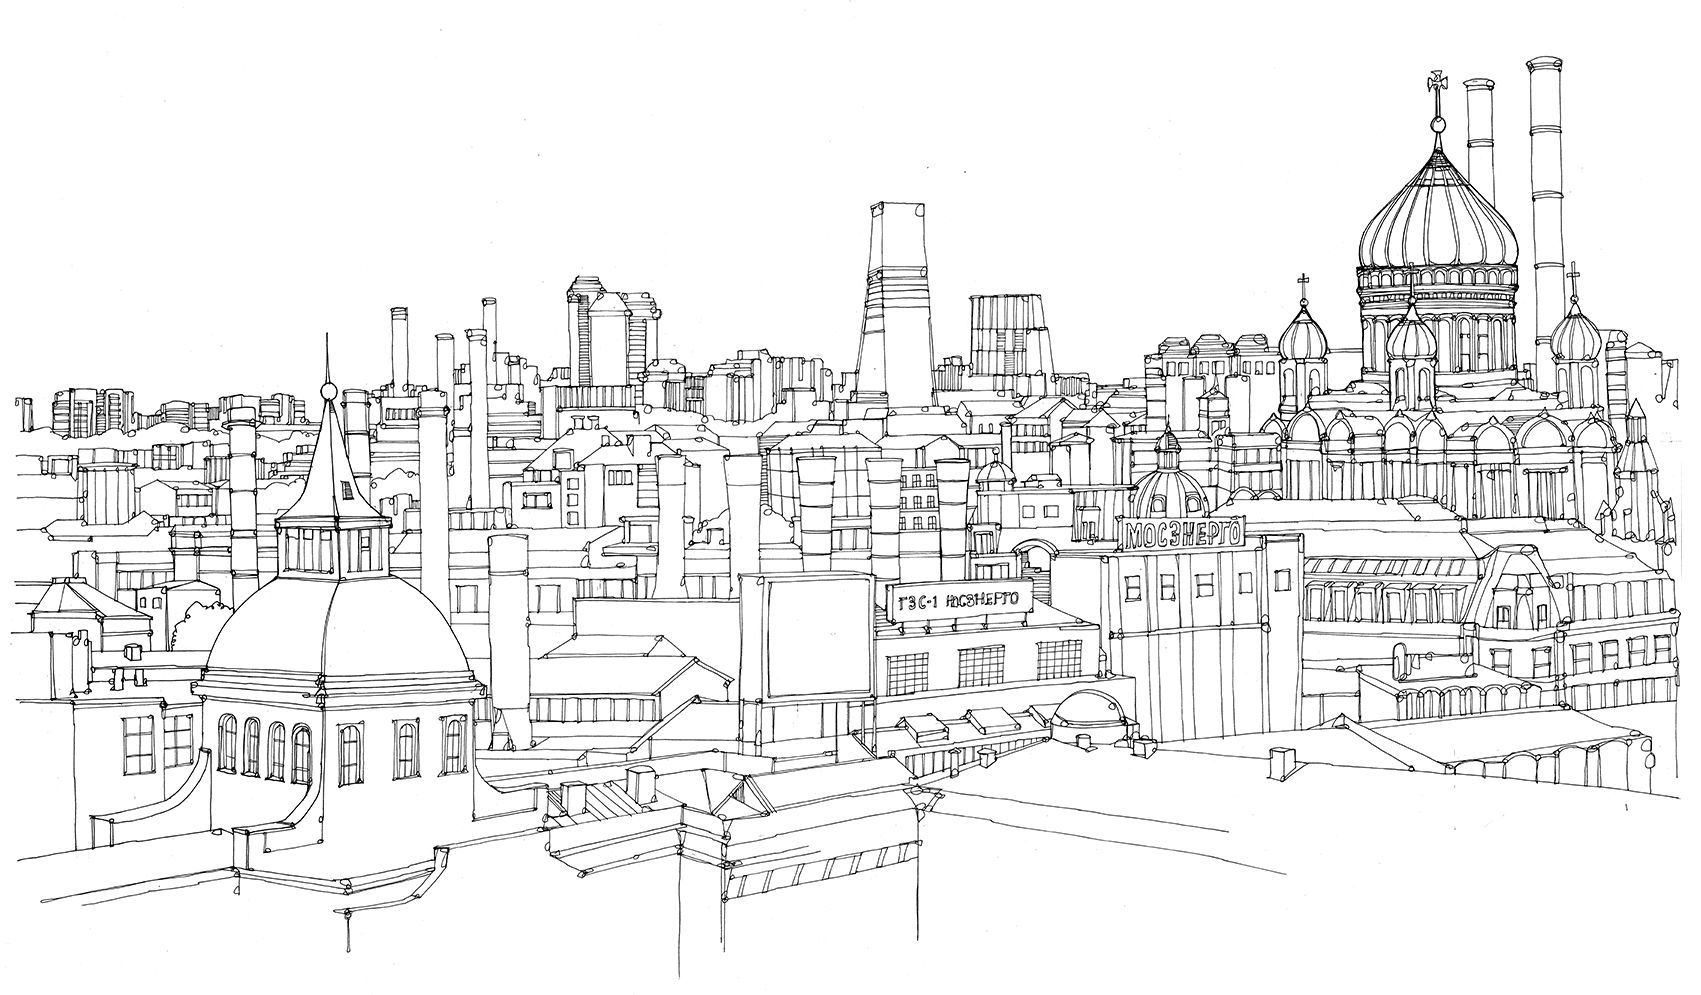 http://cityillustration.com/moscow-panoramic-part-2/